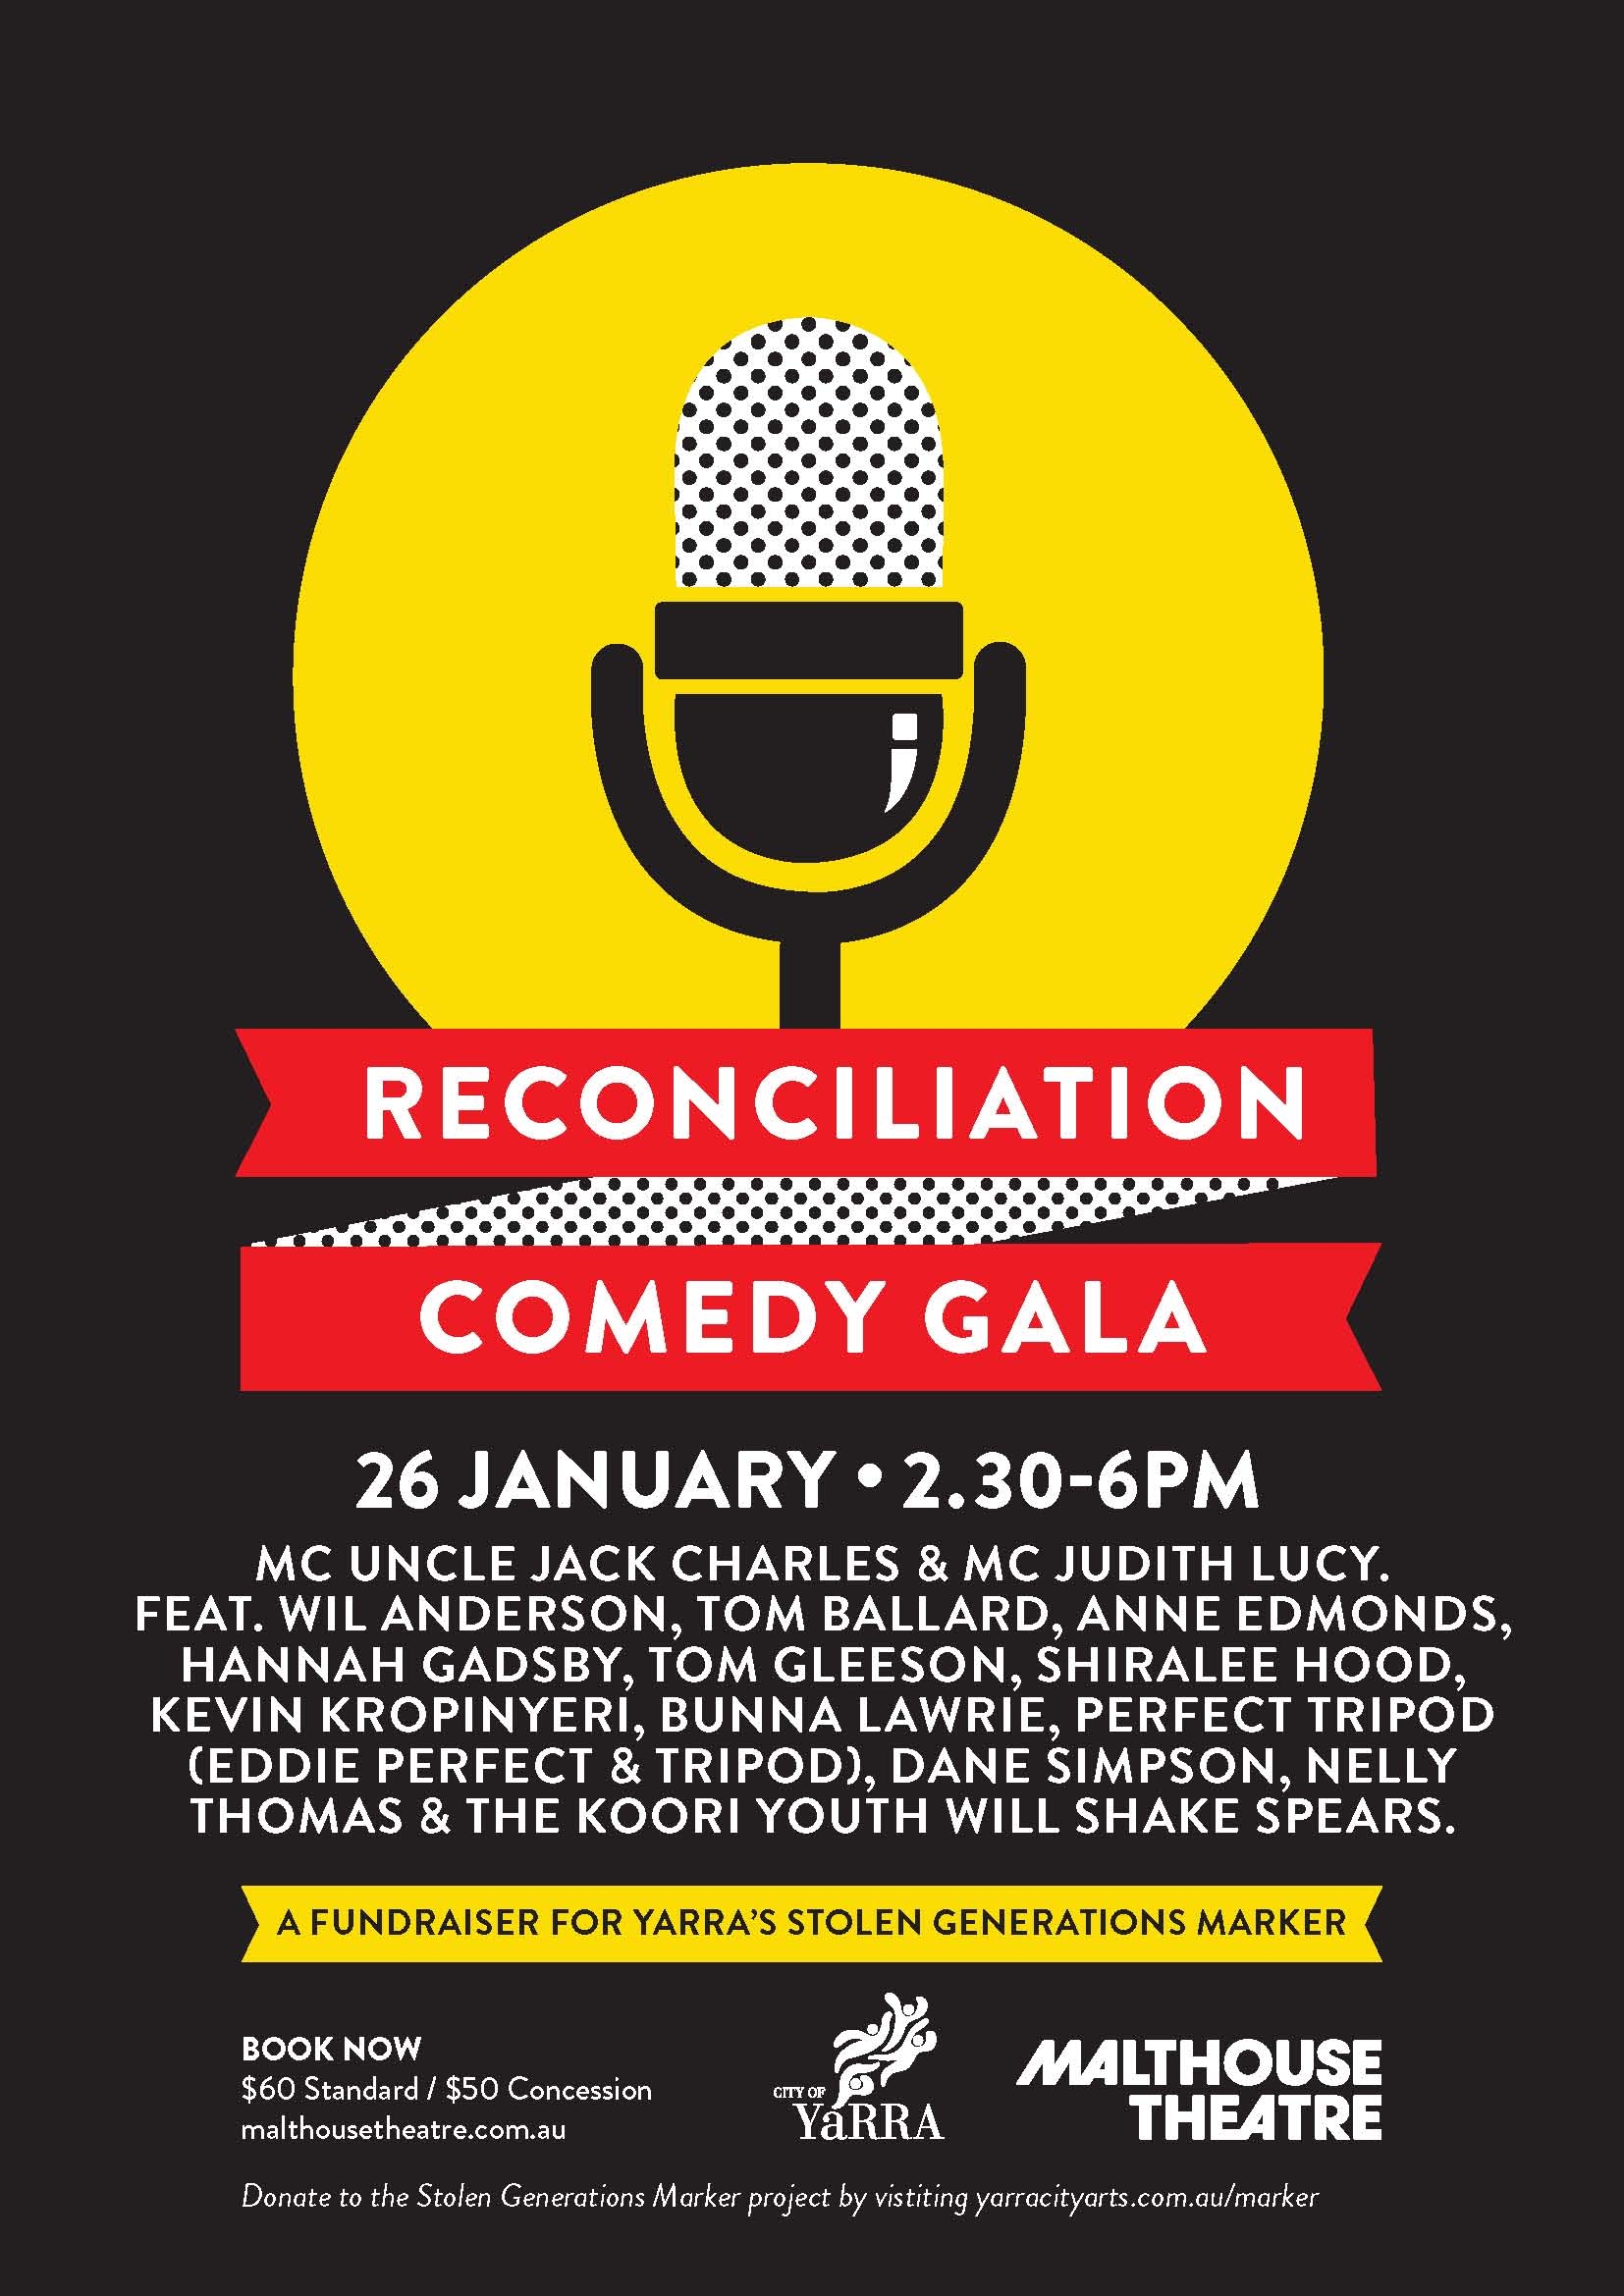 ReconciliationGala_Poster_FULL.jpg JPG